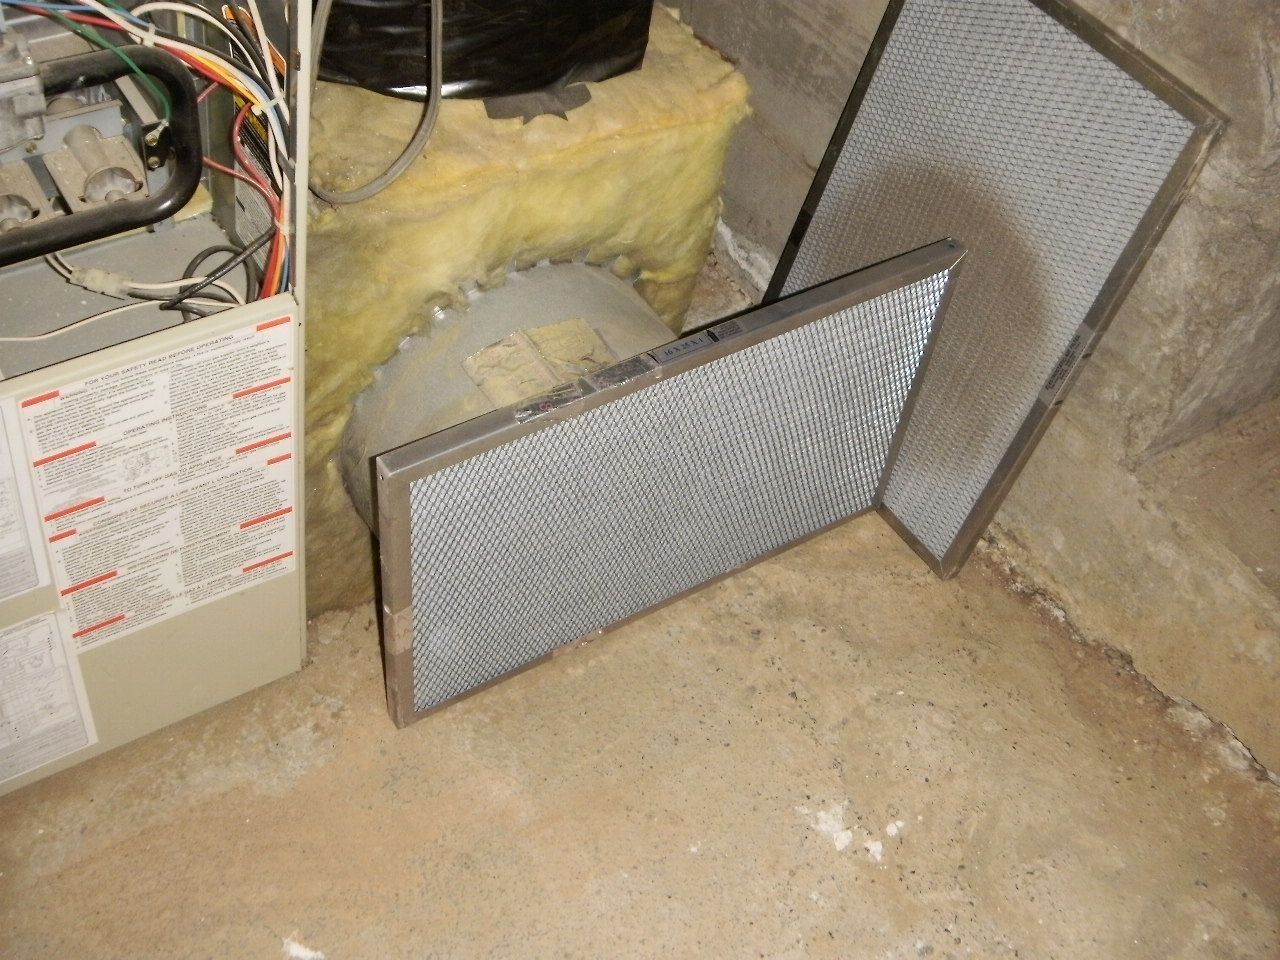 The return vent pulls air to be heated into your furnace